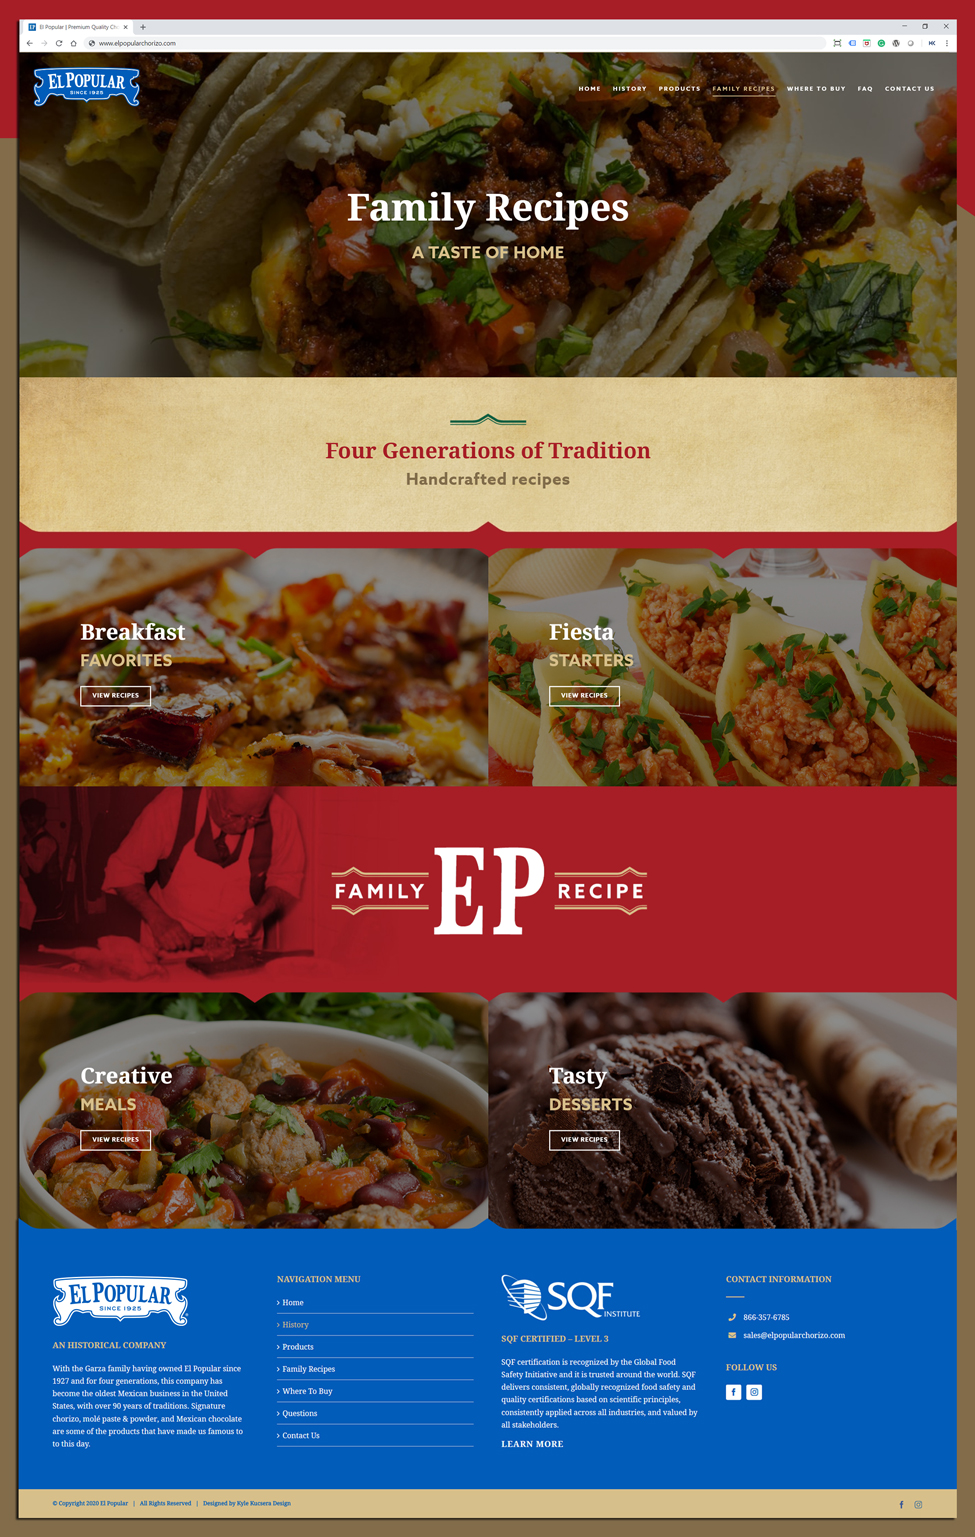 Website layout design for El Popular's family recipe page